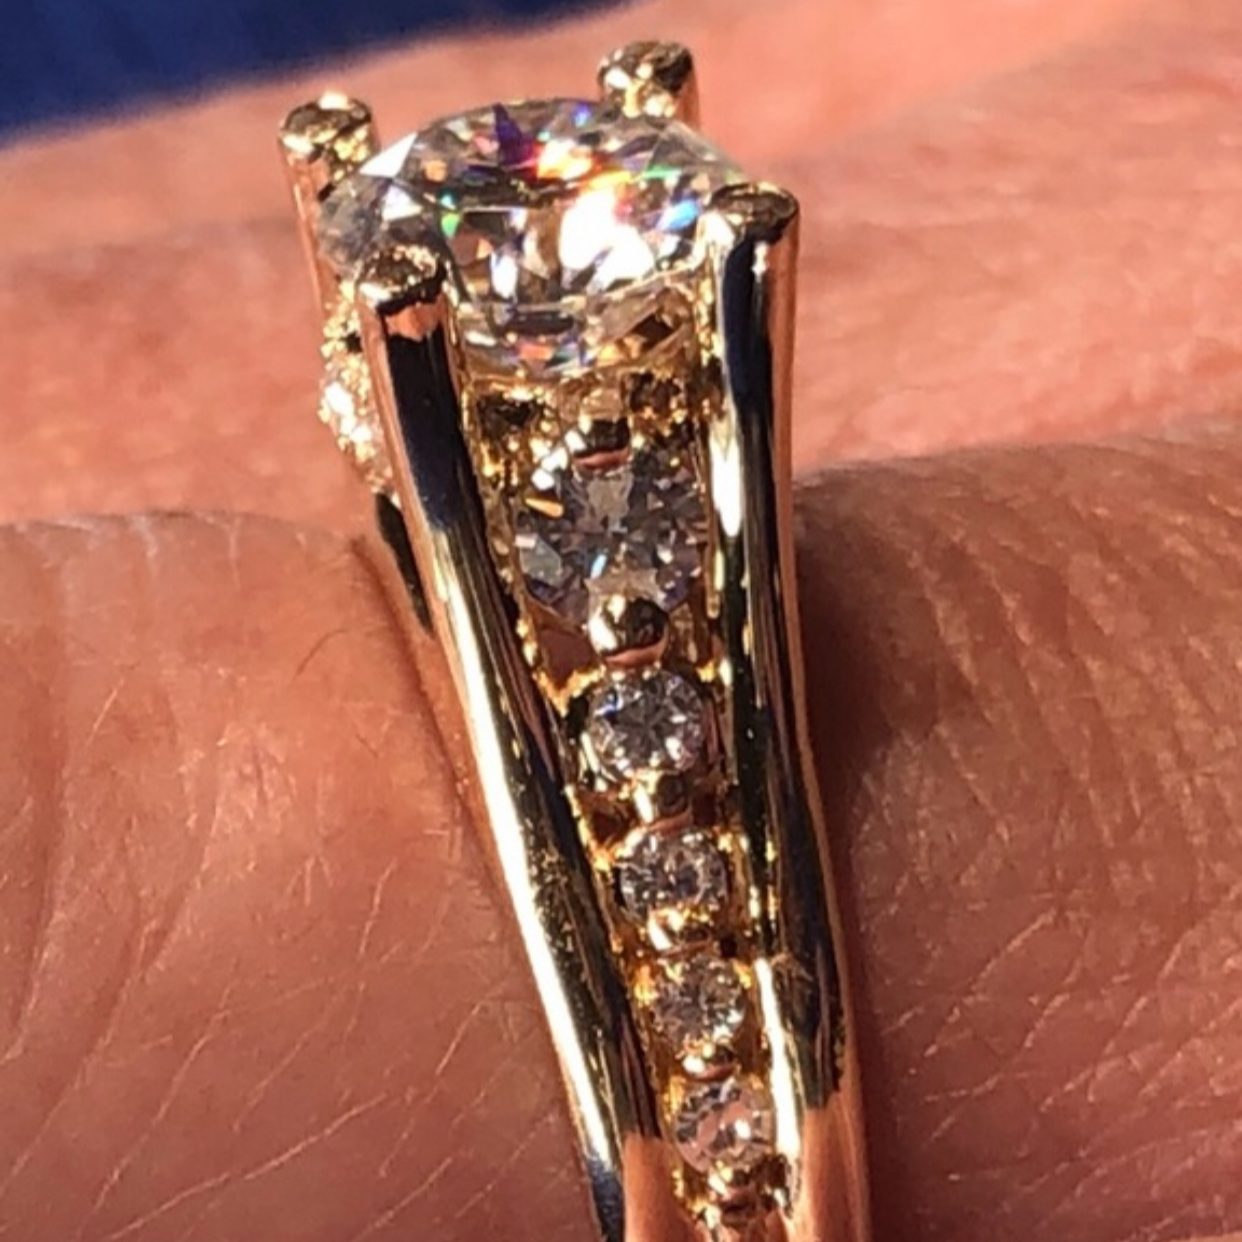 Donna's new custom ring